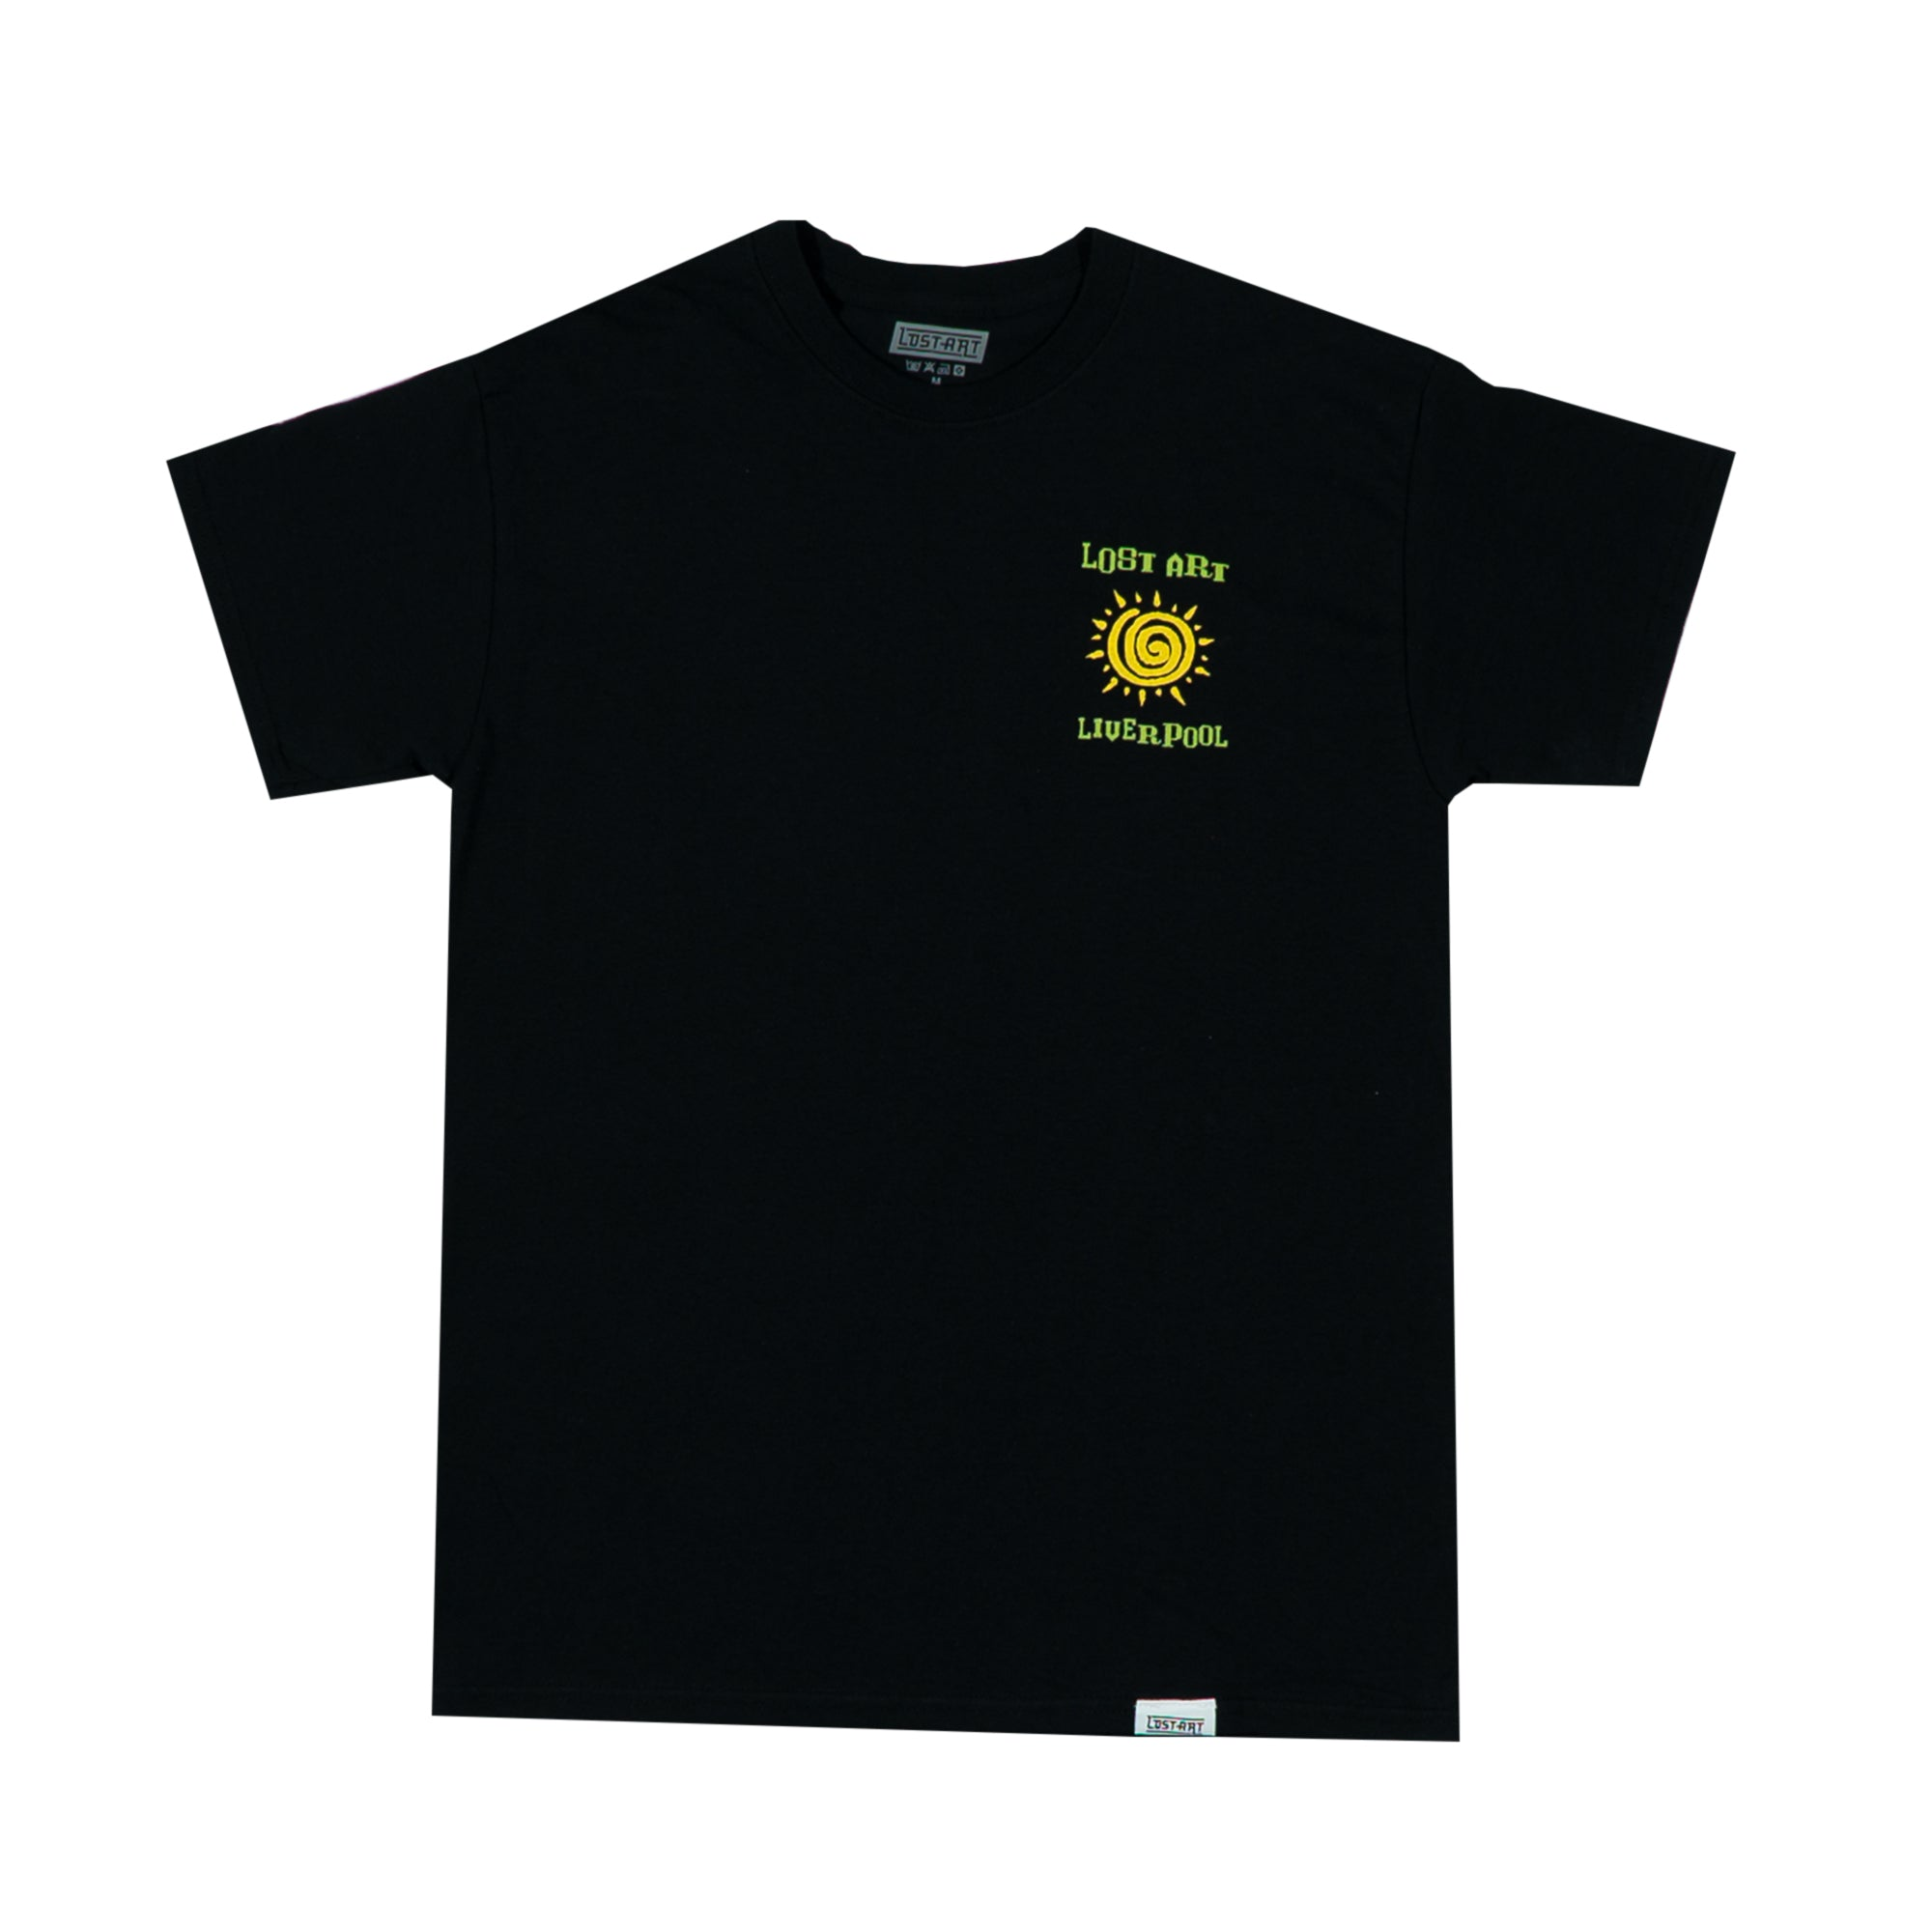 Lost Art -</br>Summertime Tee </br> Black